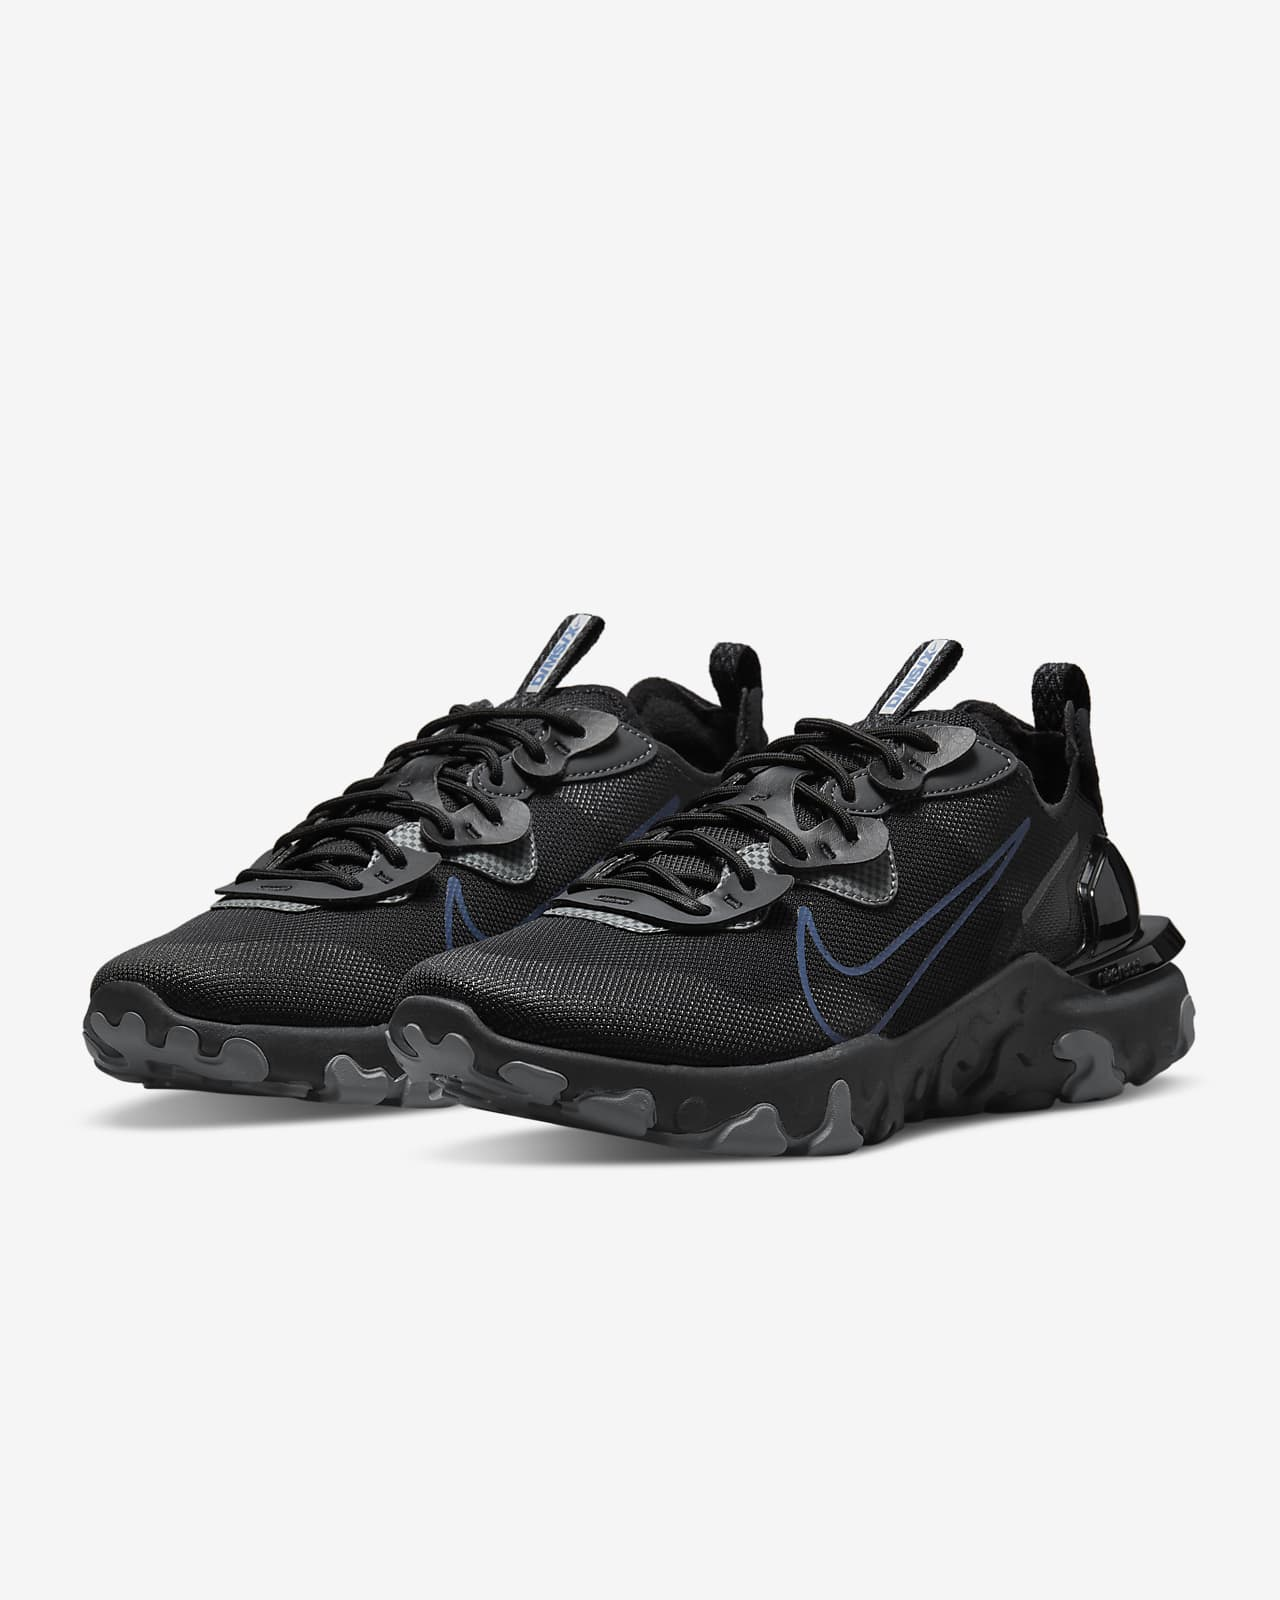 Chaussure Nike React Vision pour Homme. Nike LU